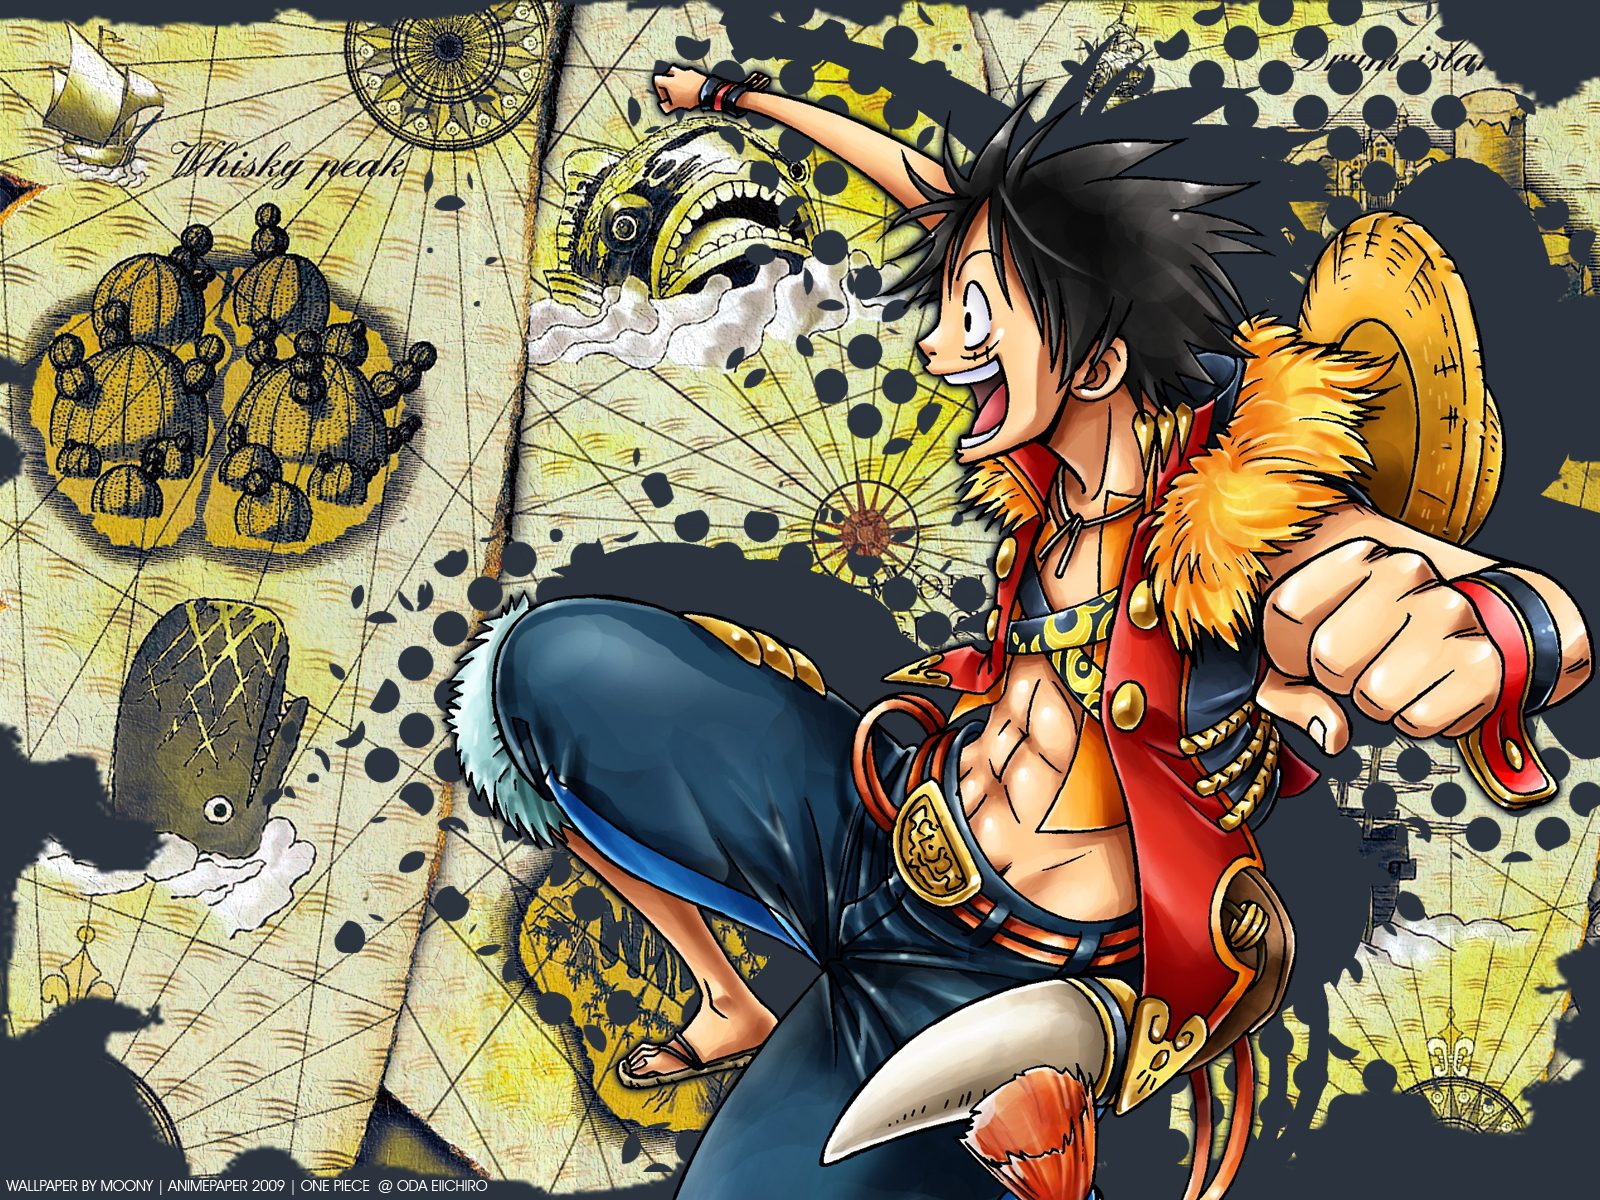 http://4.bp.blogspot.com/-jMi-tchMlKE/UKTTe213fFI/AAAAAAAAAiI/GZpZQy1GMvM/s1600/ruffy-one-piece-wallpapers.jpg